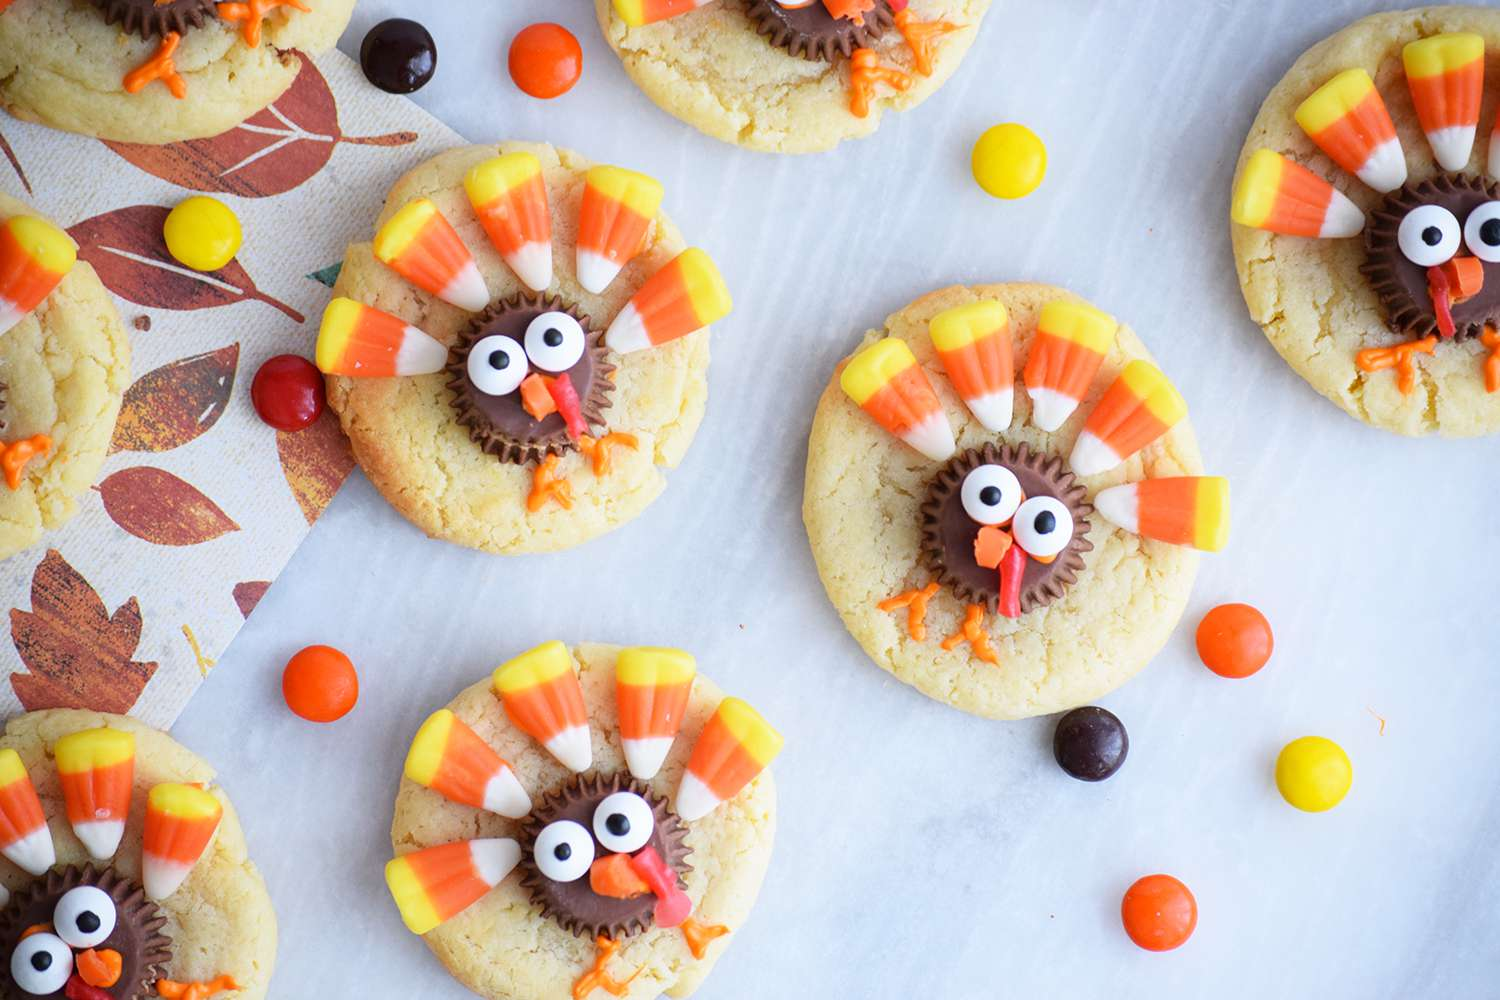 Sugar cookies decorated like turkeys for Thanksgiving